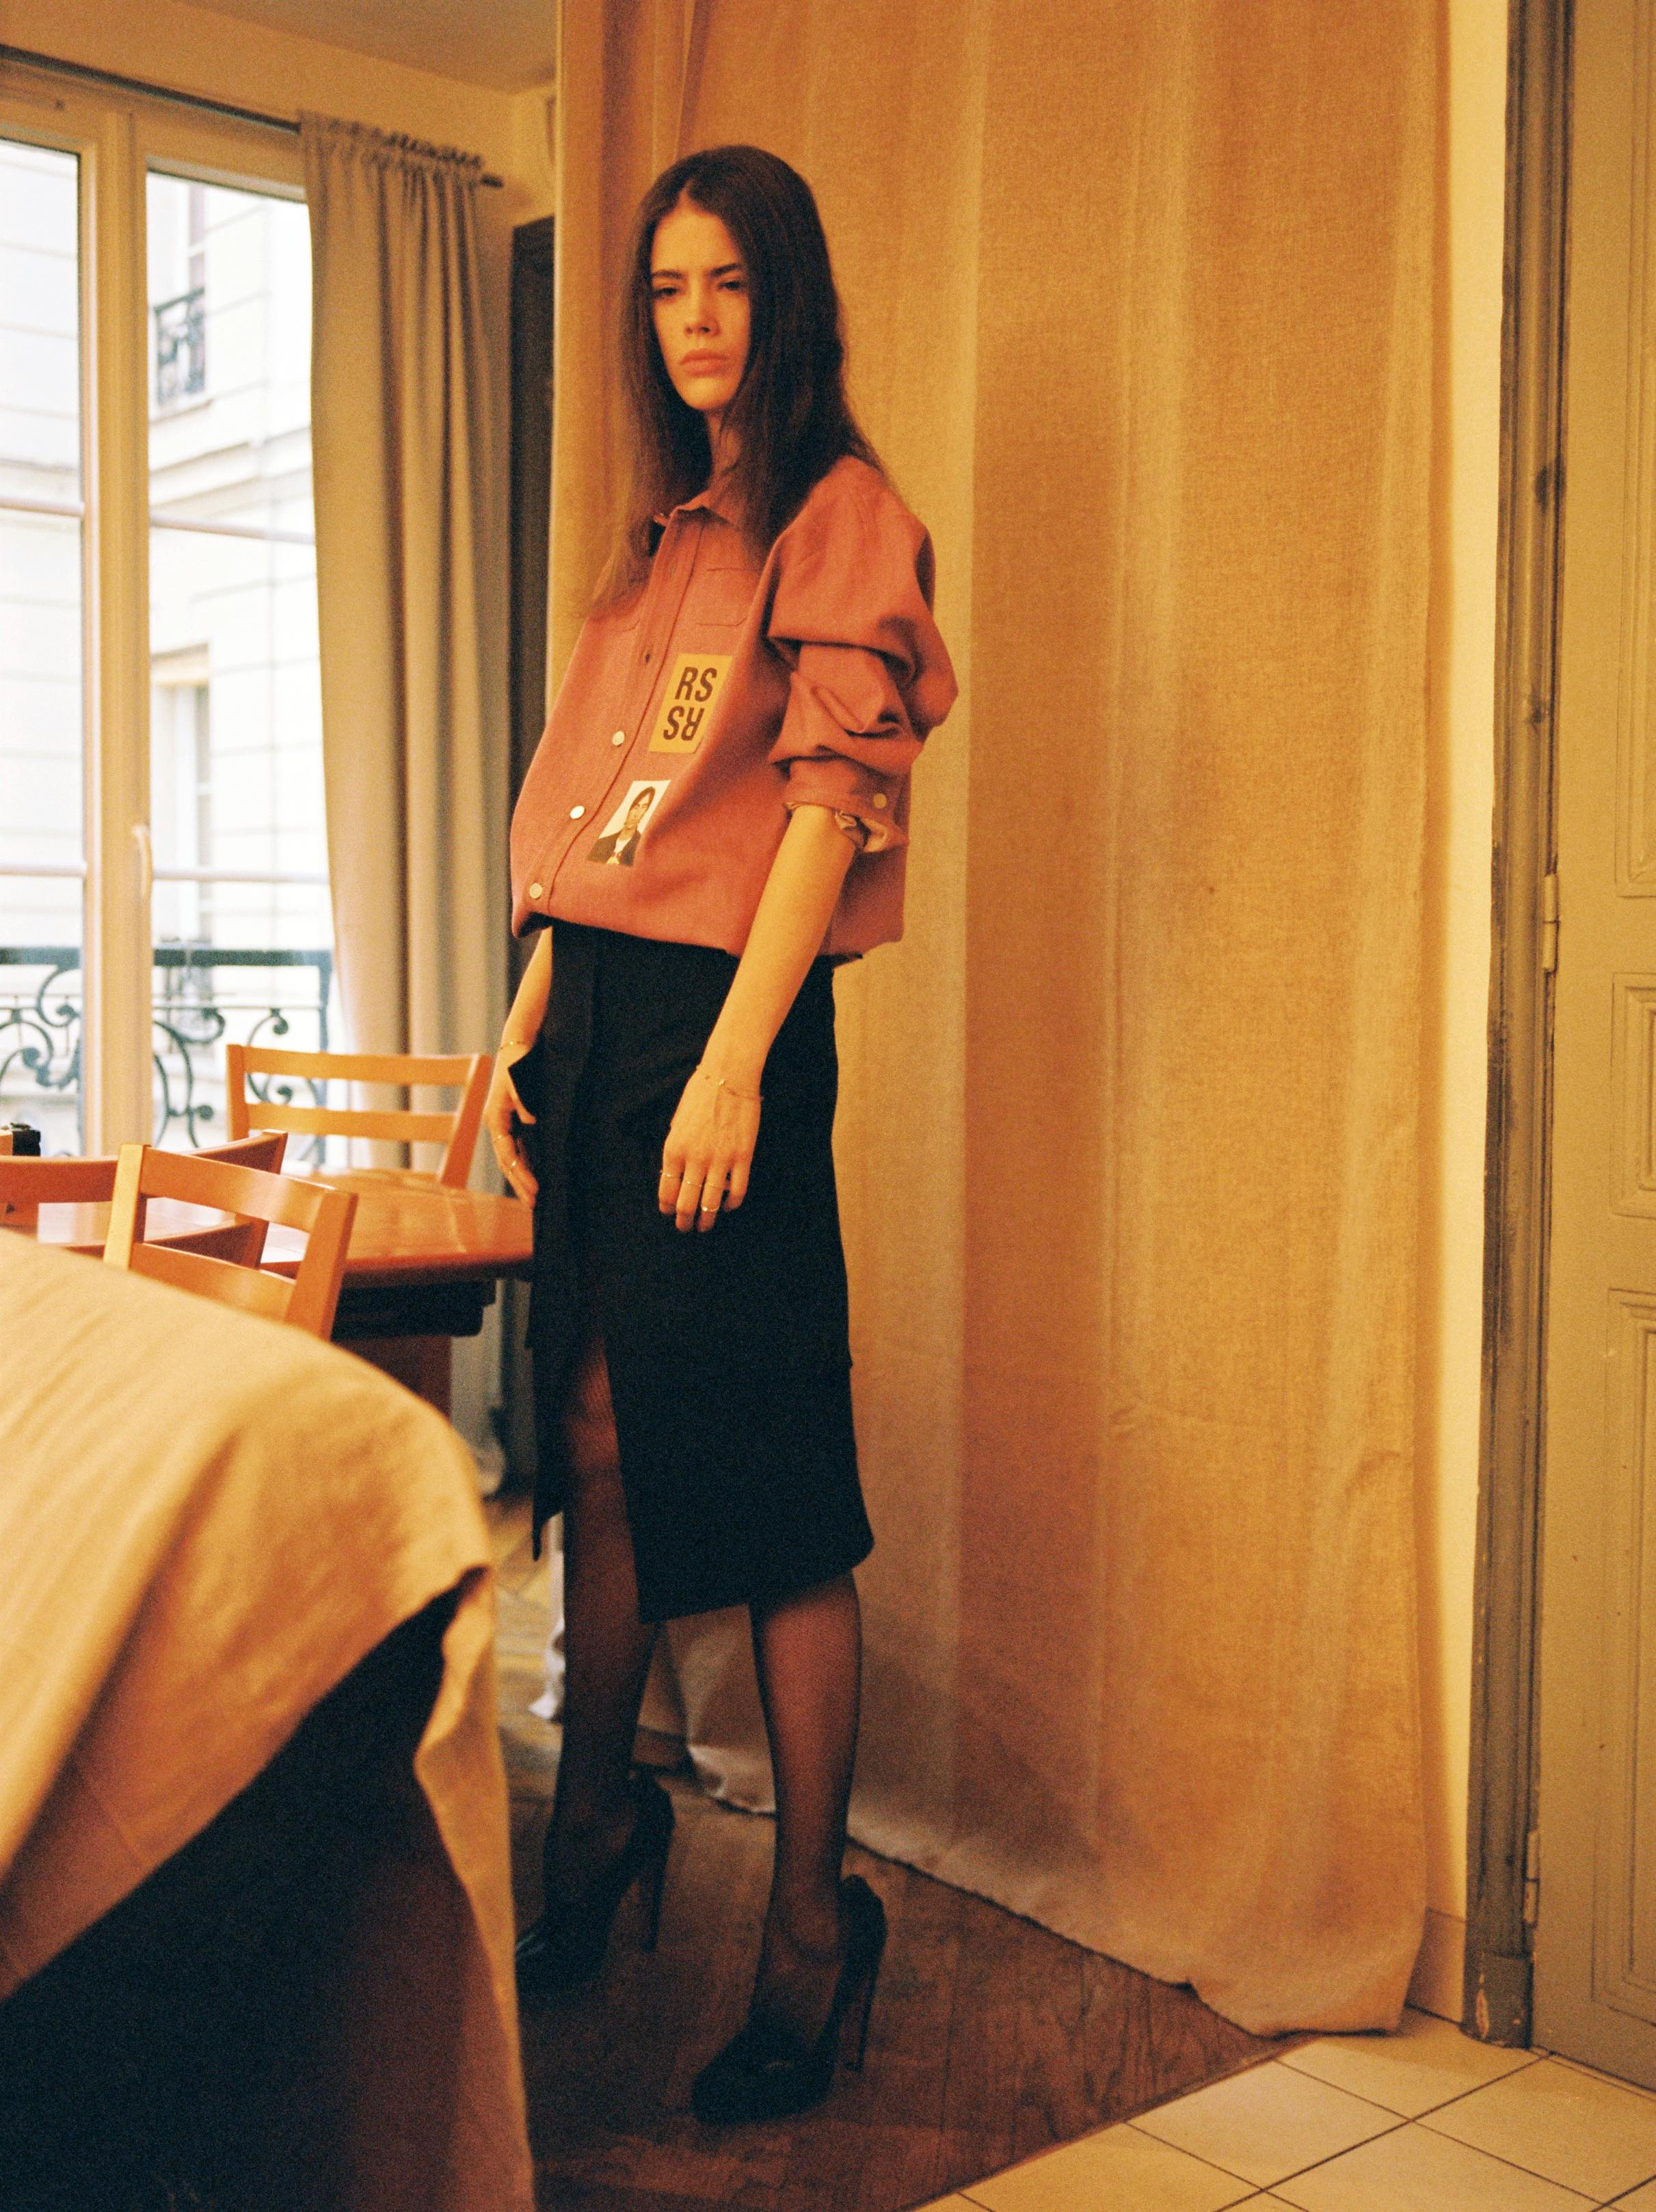 Logo patch workwear shirt  RAF SIMONS,  wool pencil skirt  ACNE STUDIOS,  tights  WOLFORD,  black leather heeled loafers  CHRISTIAN LOUBOUTIN for OLYMPIA LE-TAN,  fine silver rings  LAURA LEE JEWELLERY,  diamond bracelets  SWEET PEA JEWELLERY .